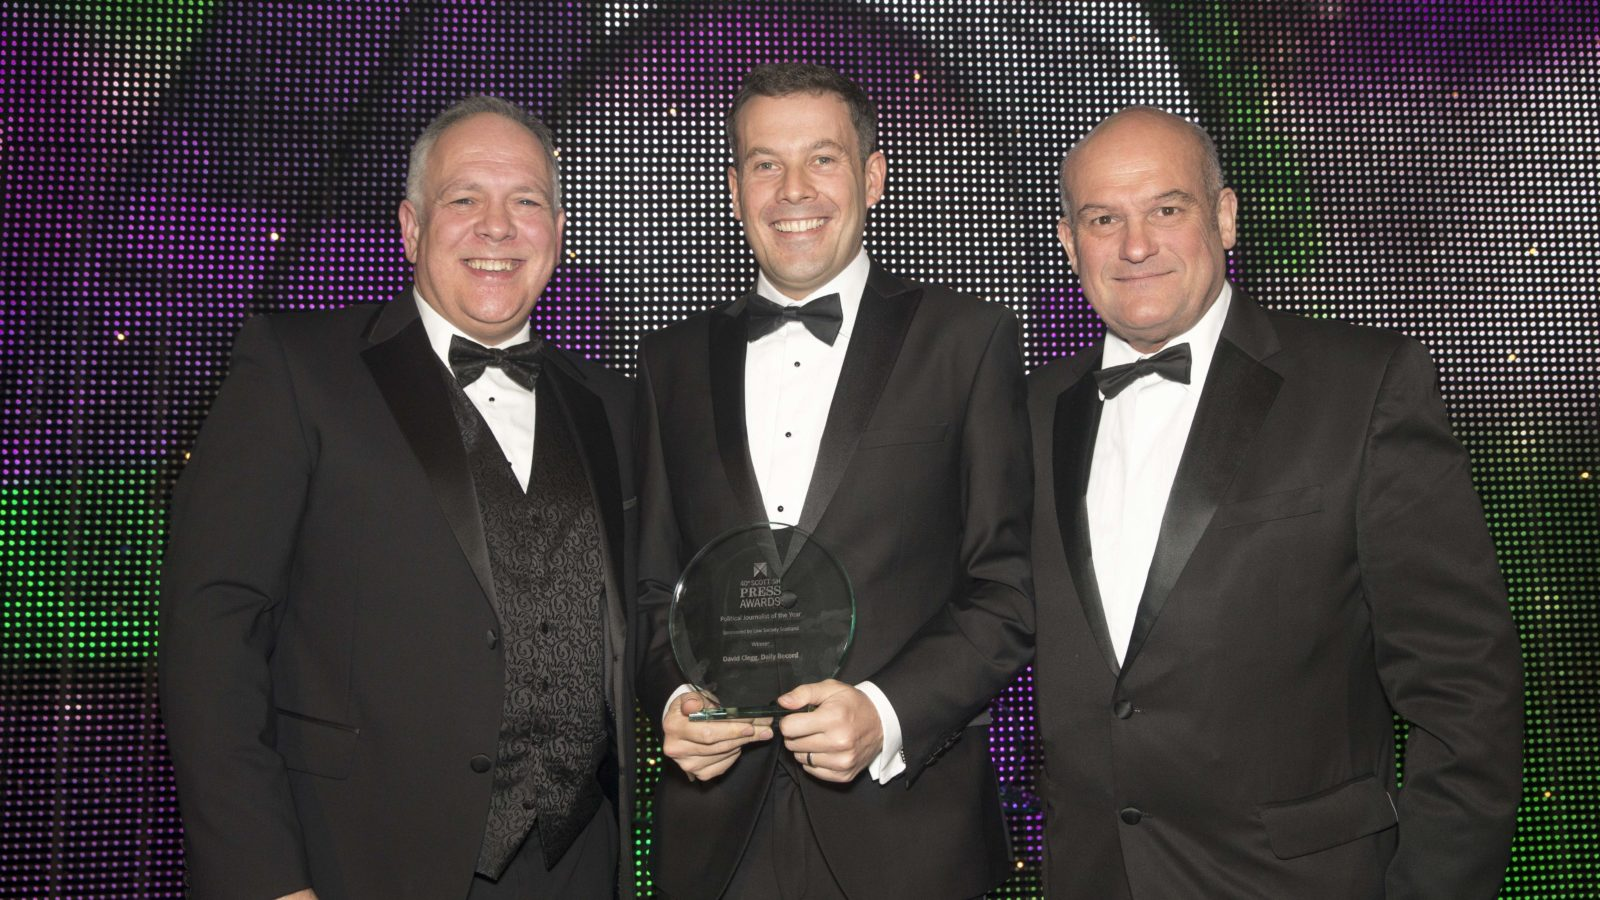 Political Journalist of the Year David Clegg, Daily Record